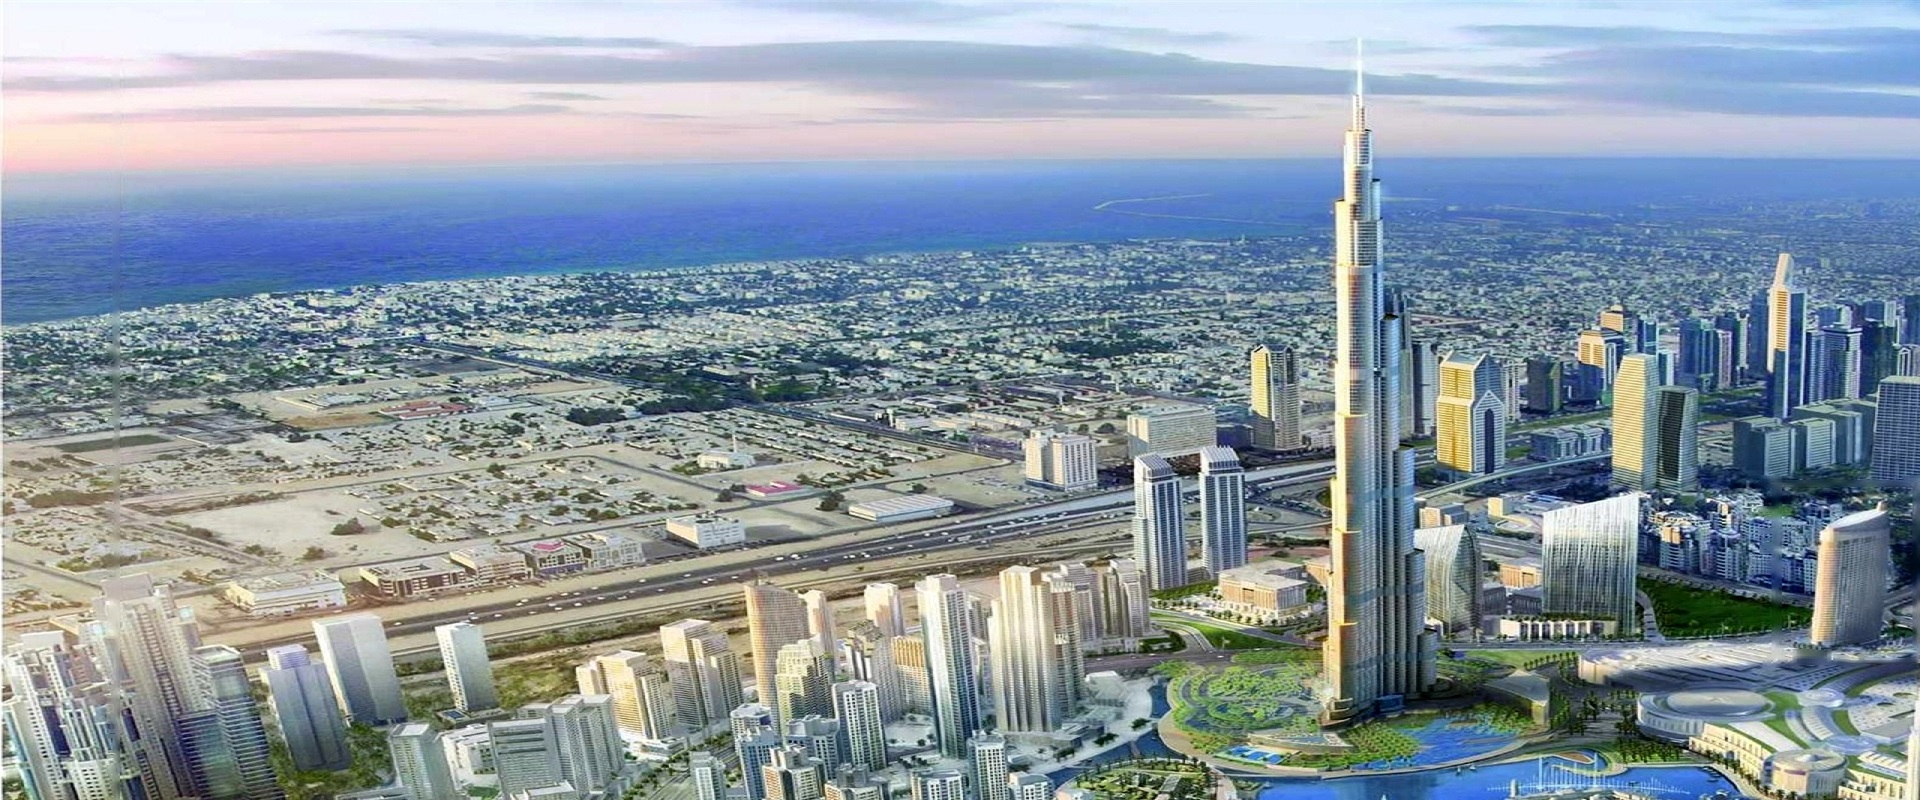 Real estate in Dubai, United Arab Emirates - Khalifa to the sea.